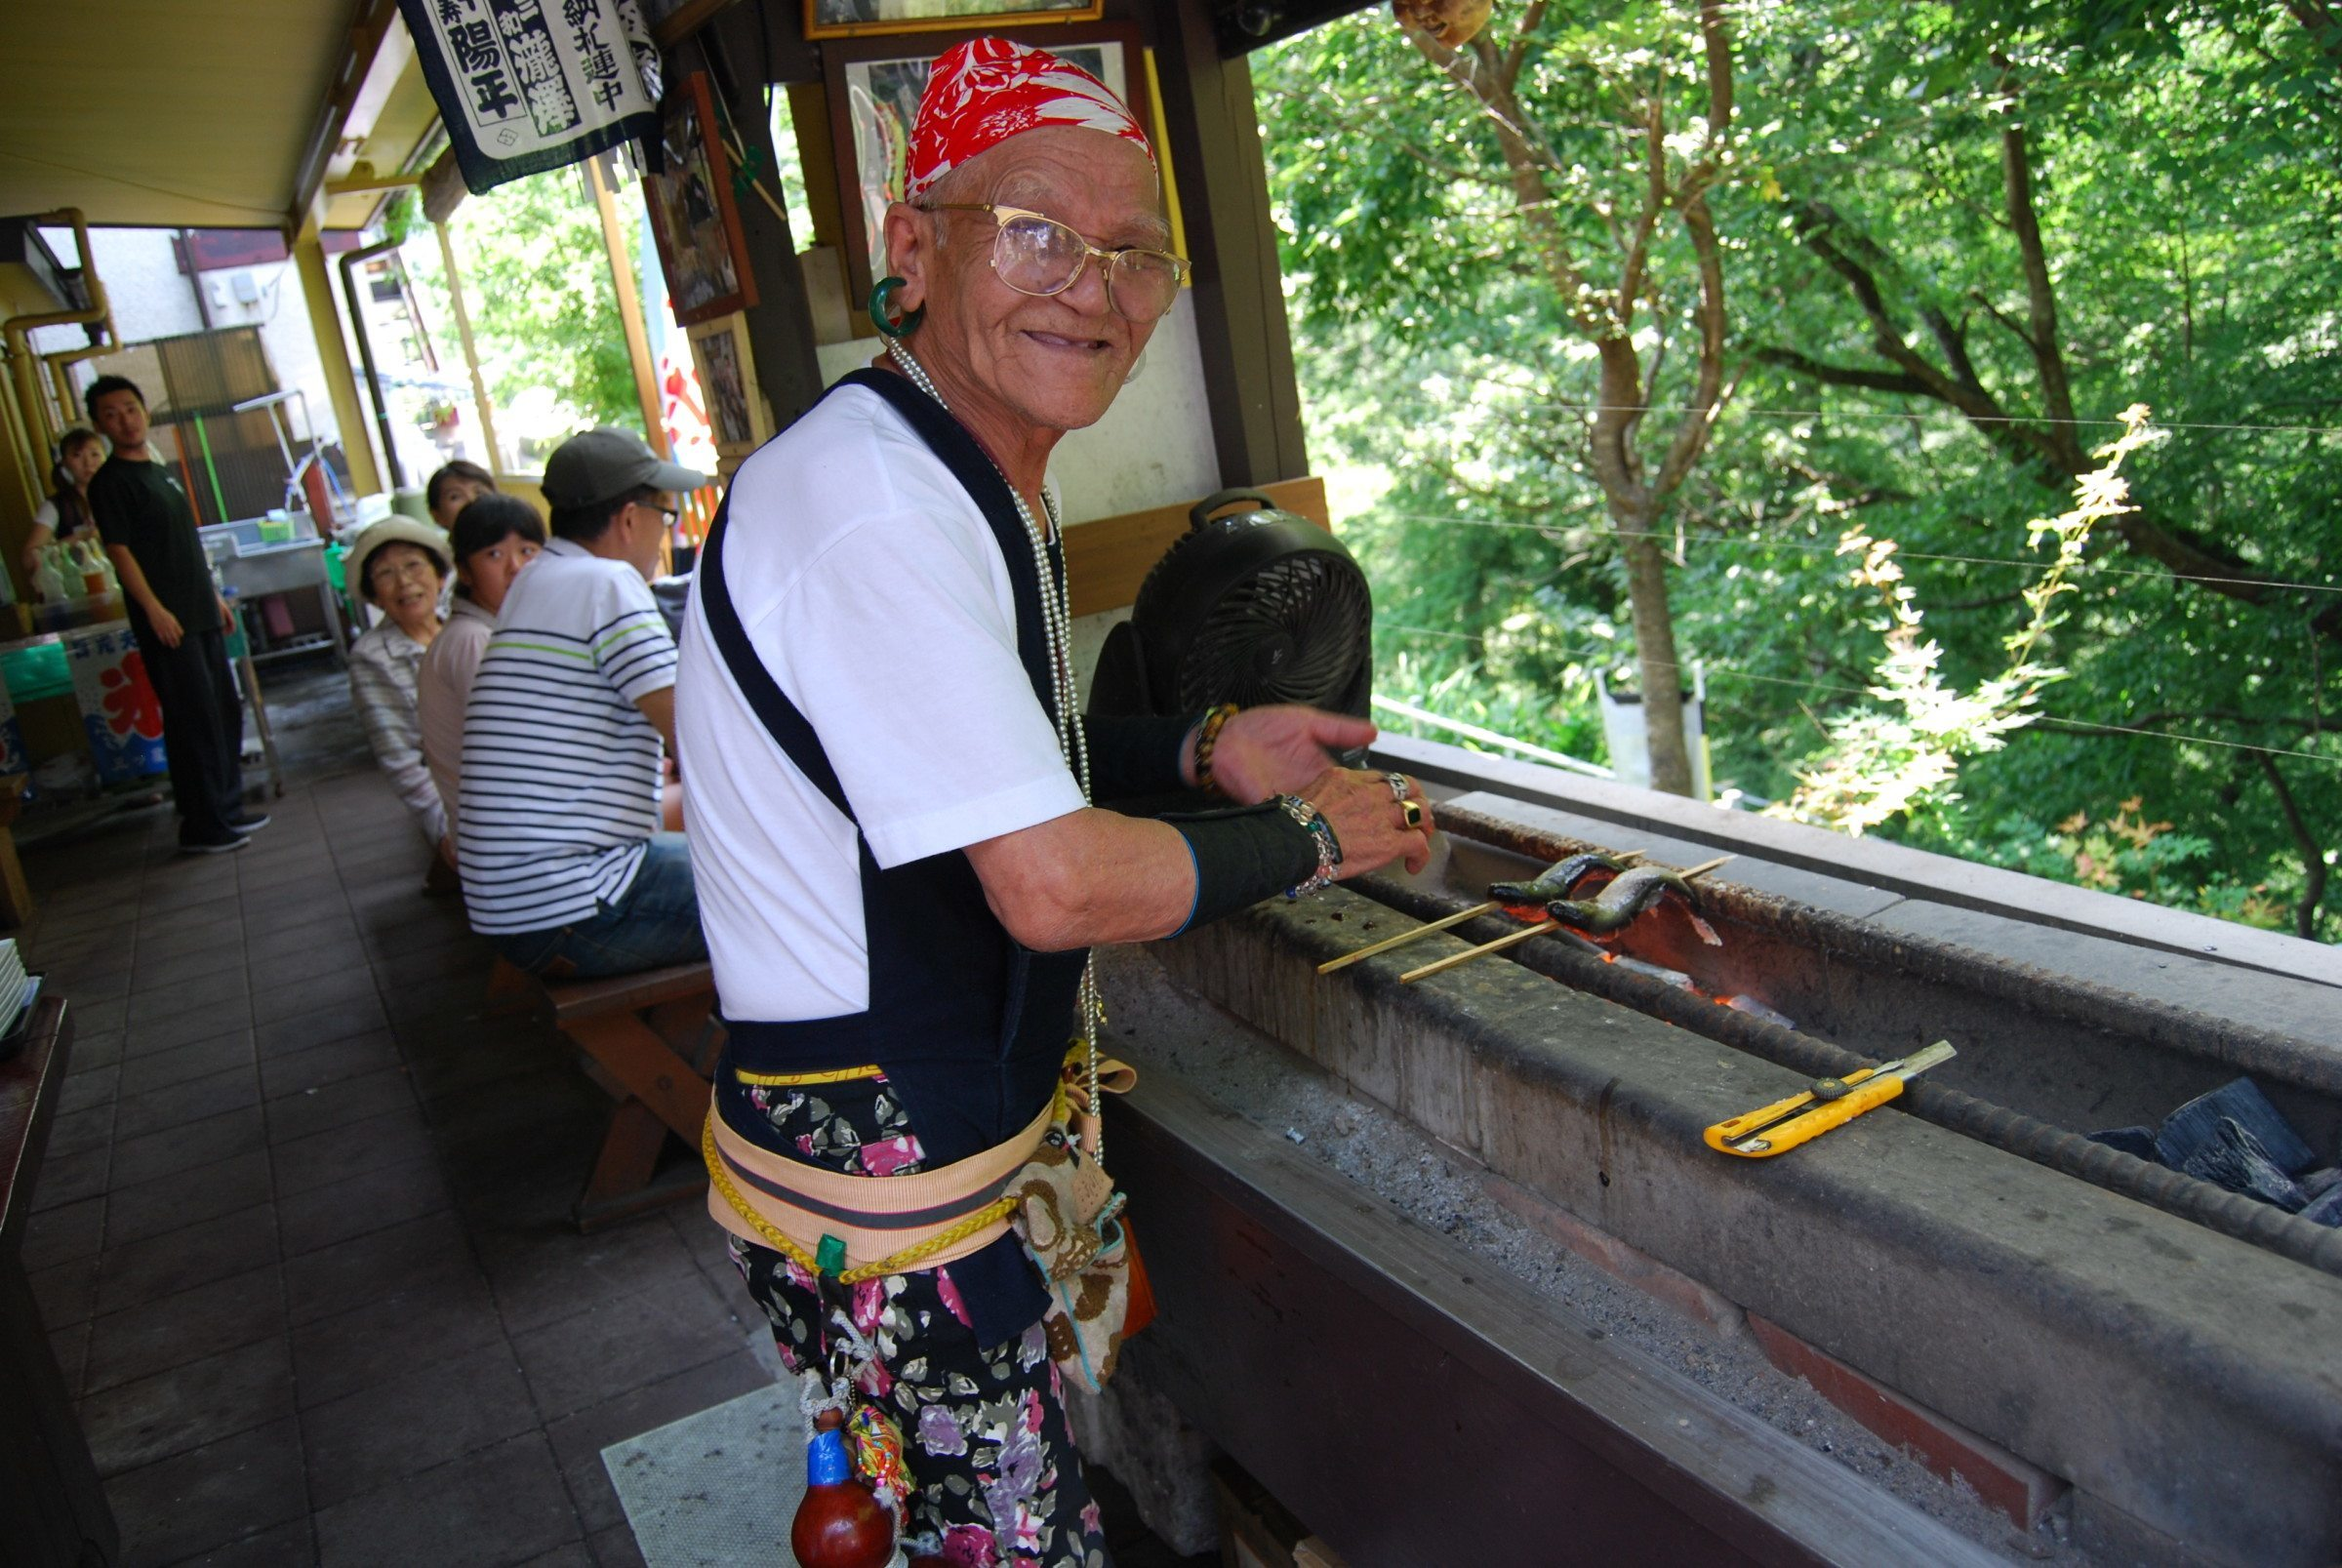 Serving up freshly cooked fish with style at the Ryuo Gorge